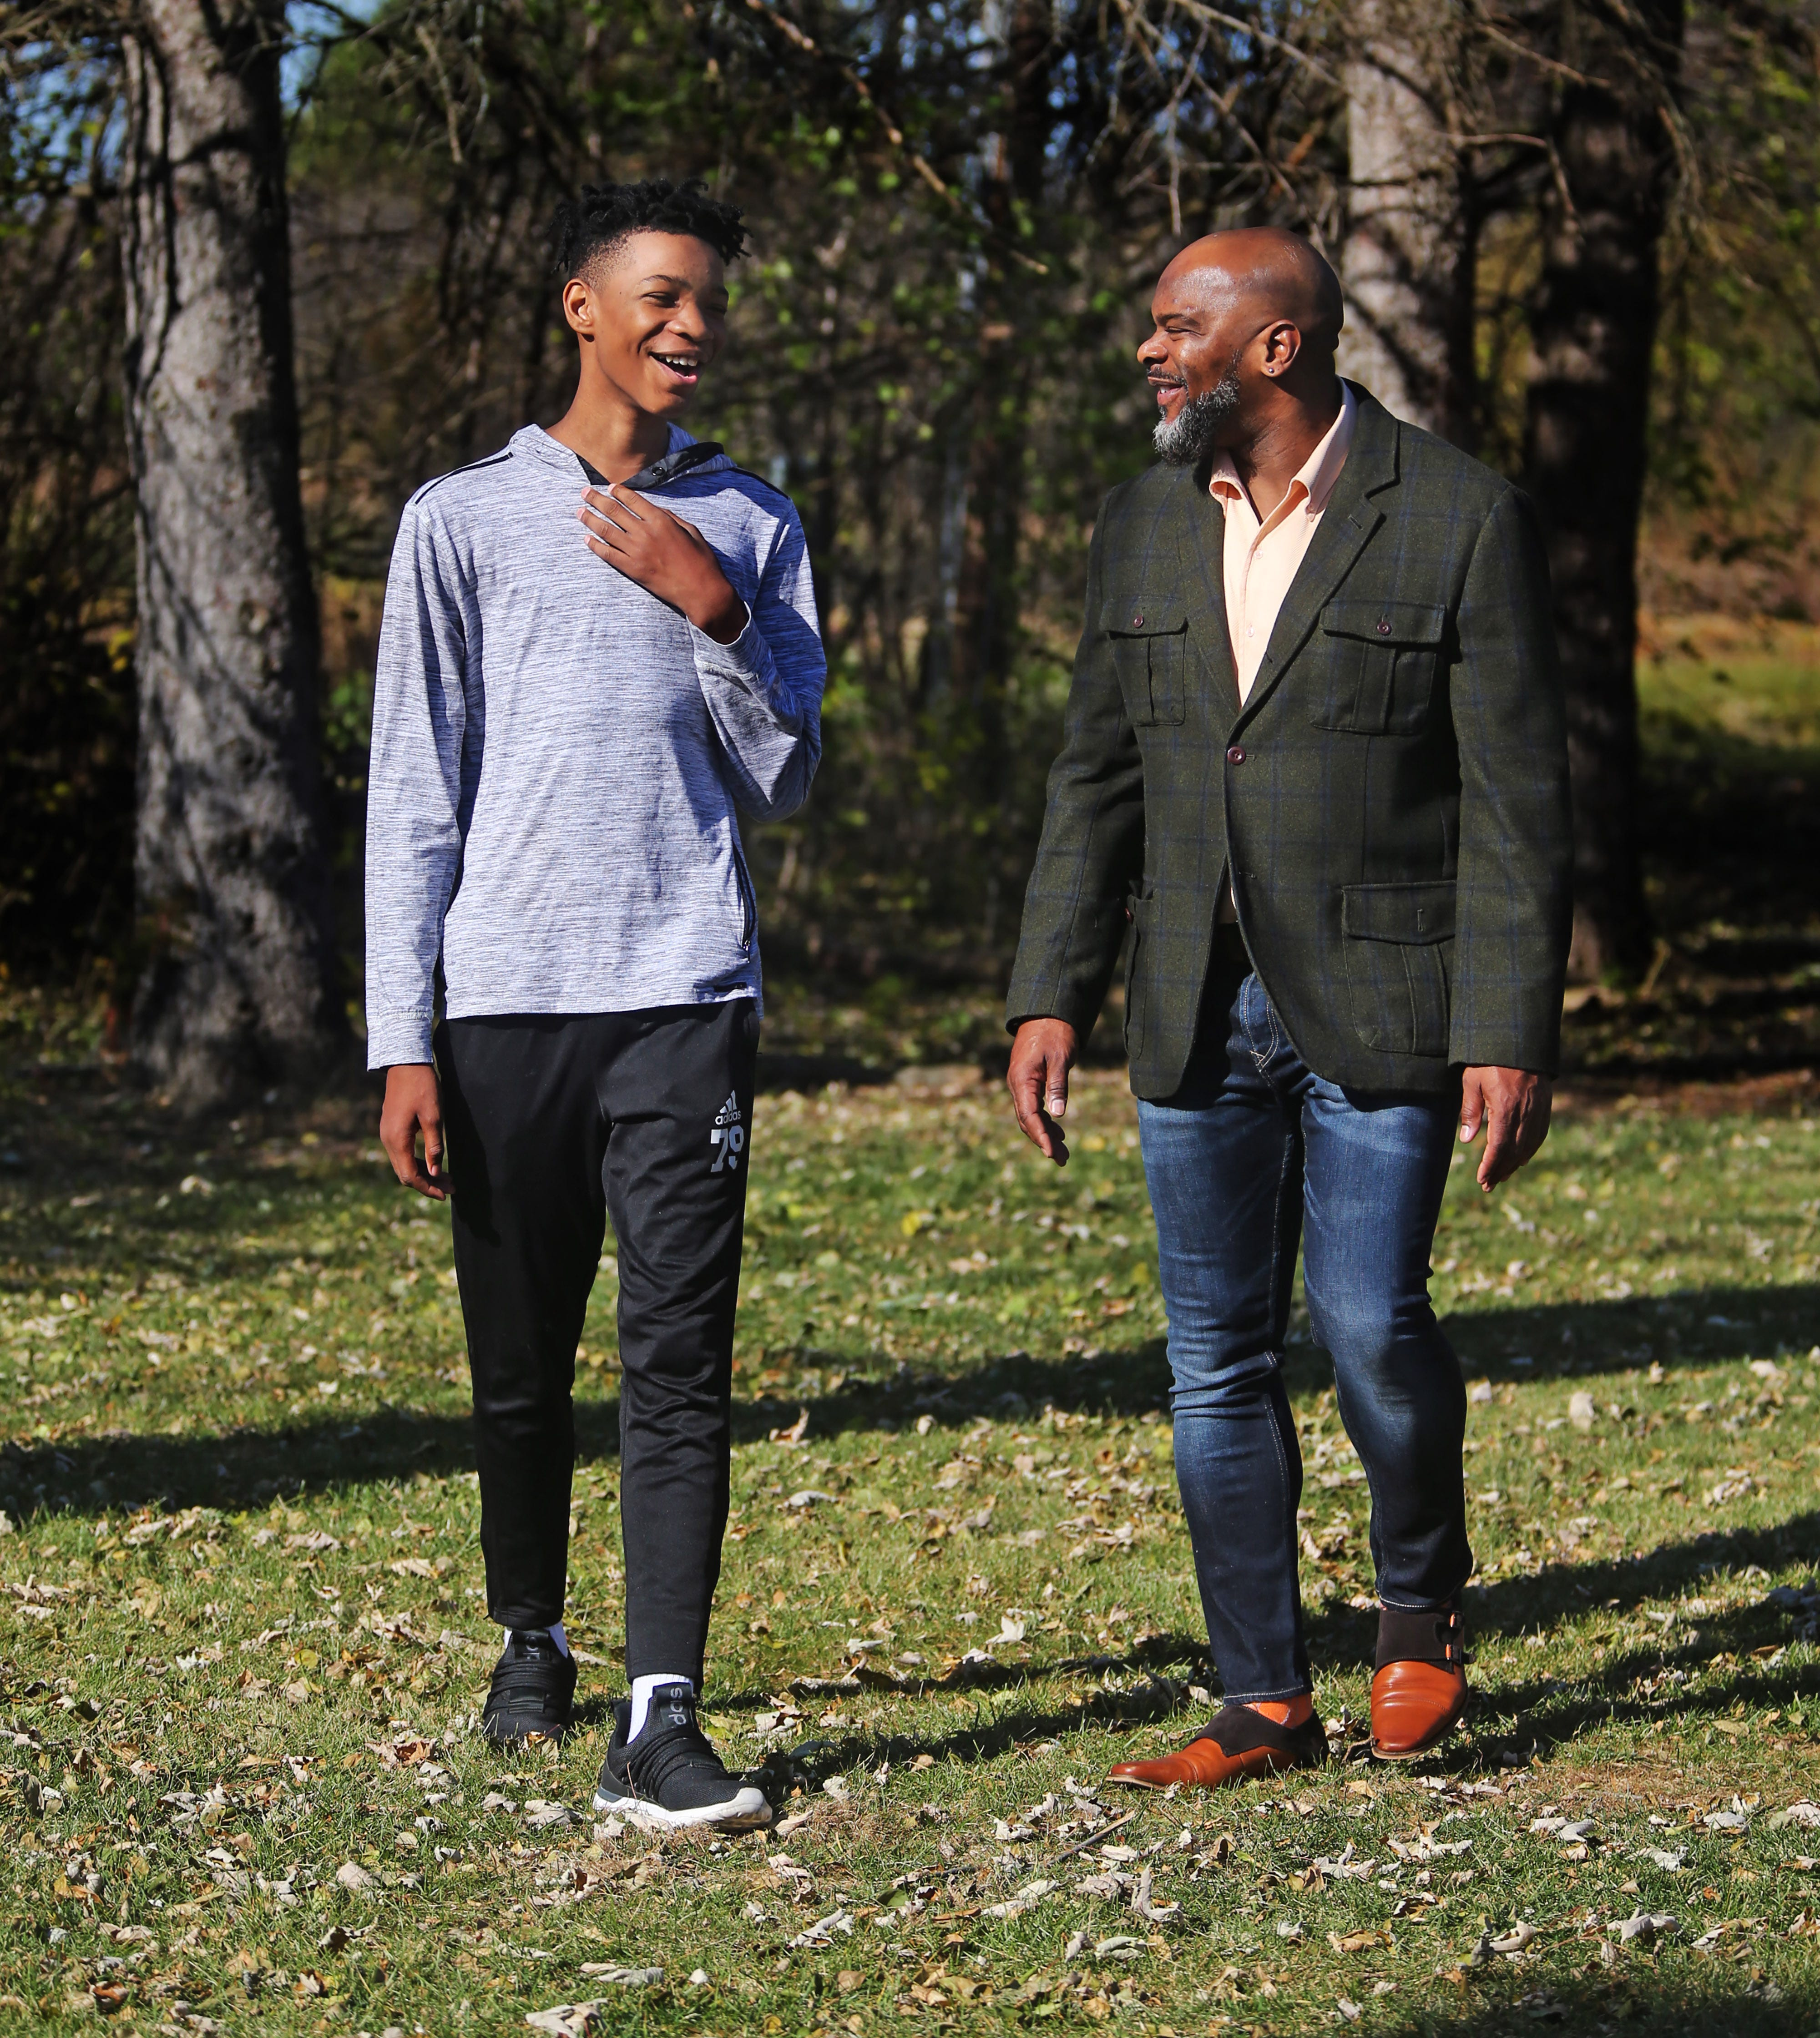 Dillan Burns, 14, left, spends time with his dad, Daryl Burns, 46, a former principal at Vincent High School in Milwaukee. Daryl Burns said that he got his son interested in reading by taking him to the library and letting him discover for himself what he wanted to read.